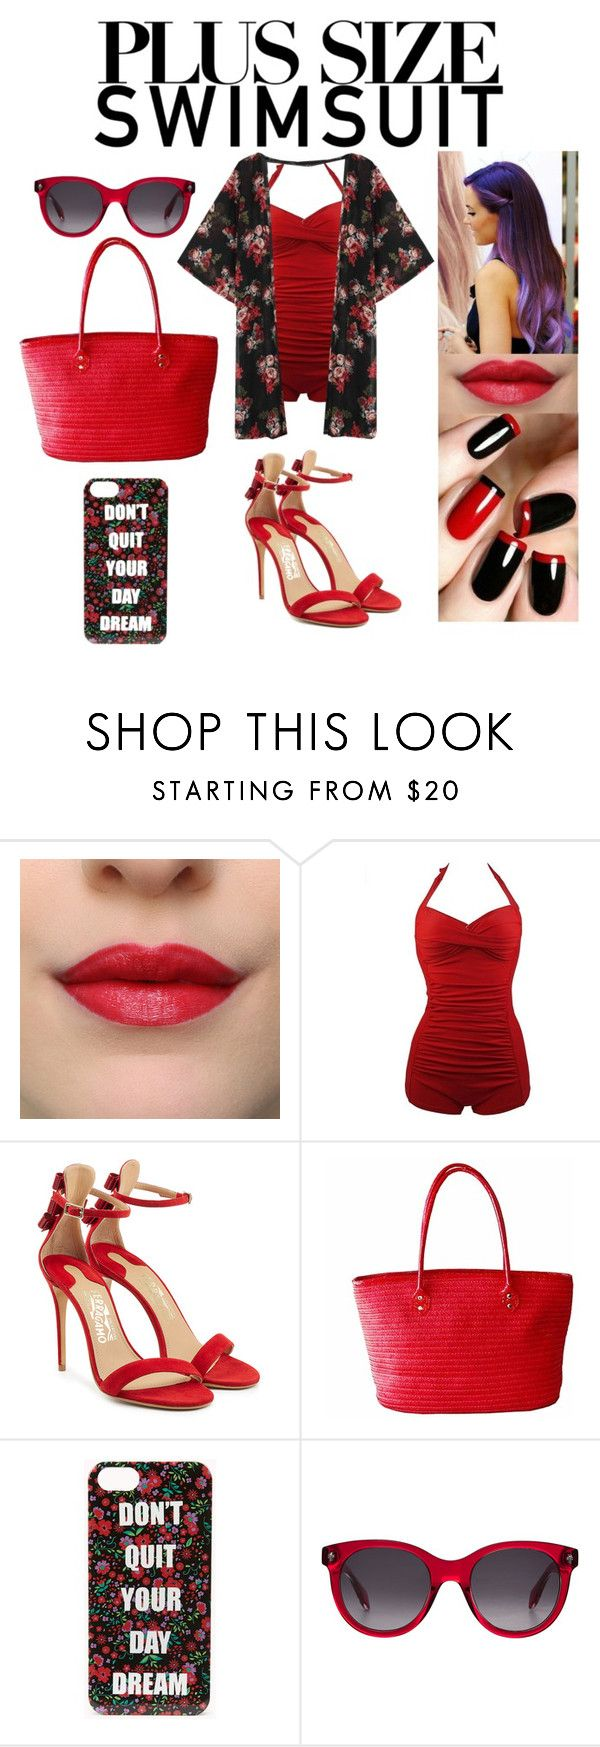 """Stylish Curves Swimsuit"" by xcoordinatingfashionx ❤ liked on Polyvore featuring Salvatore Ferragamo, Forever 21, Alexander McQueen, stylishcurves and plussizeswimsuit"